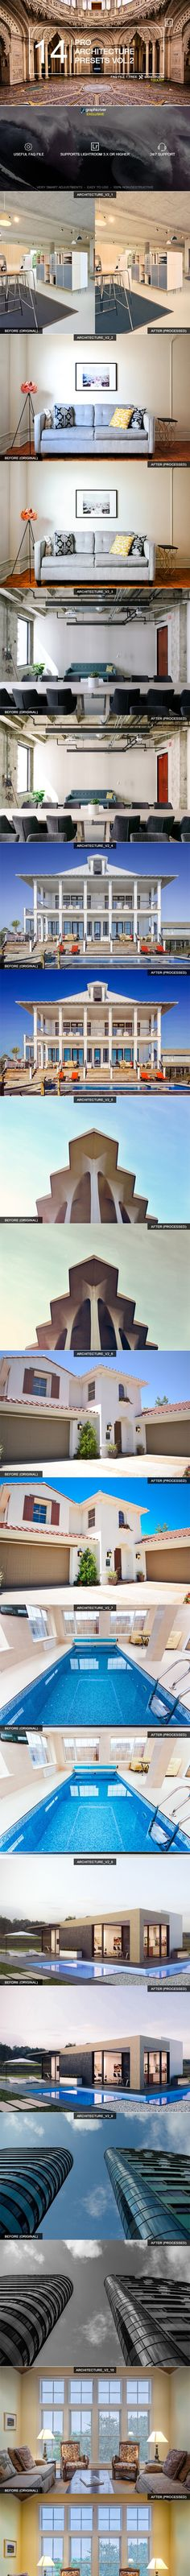 14 Pro Architecture Presets — LRTemplate #pro #photography Photoshop Actions, Lightroom Presets, Free Photoshop, Underexposed Photo, Google Drive Logo, Basic Tool Kit, Raw Photo, Architecture Photo, Premium Wordpress Themes